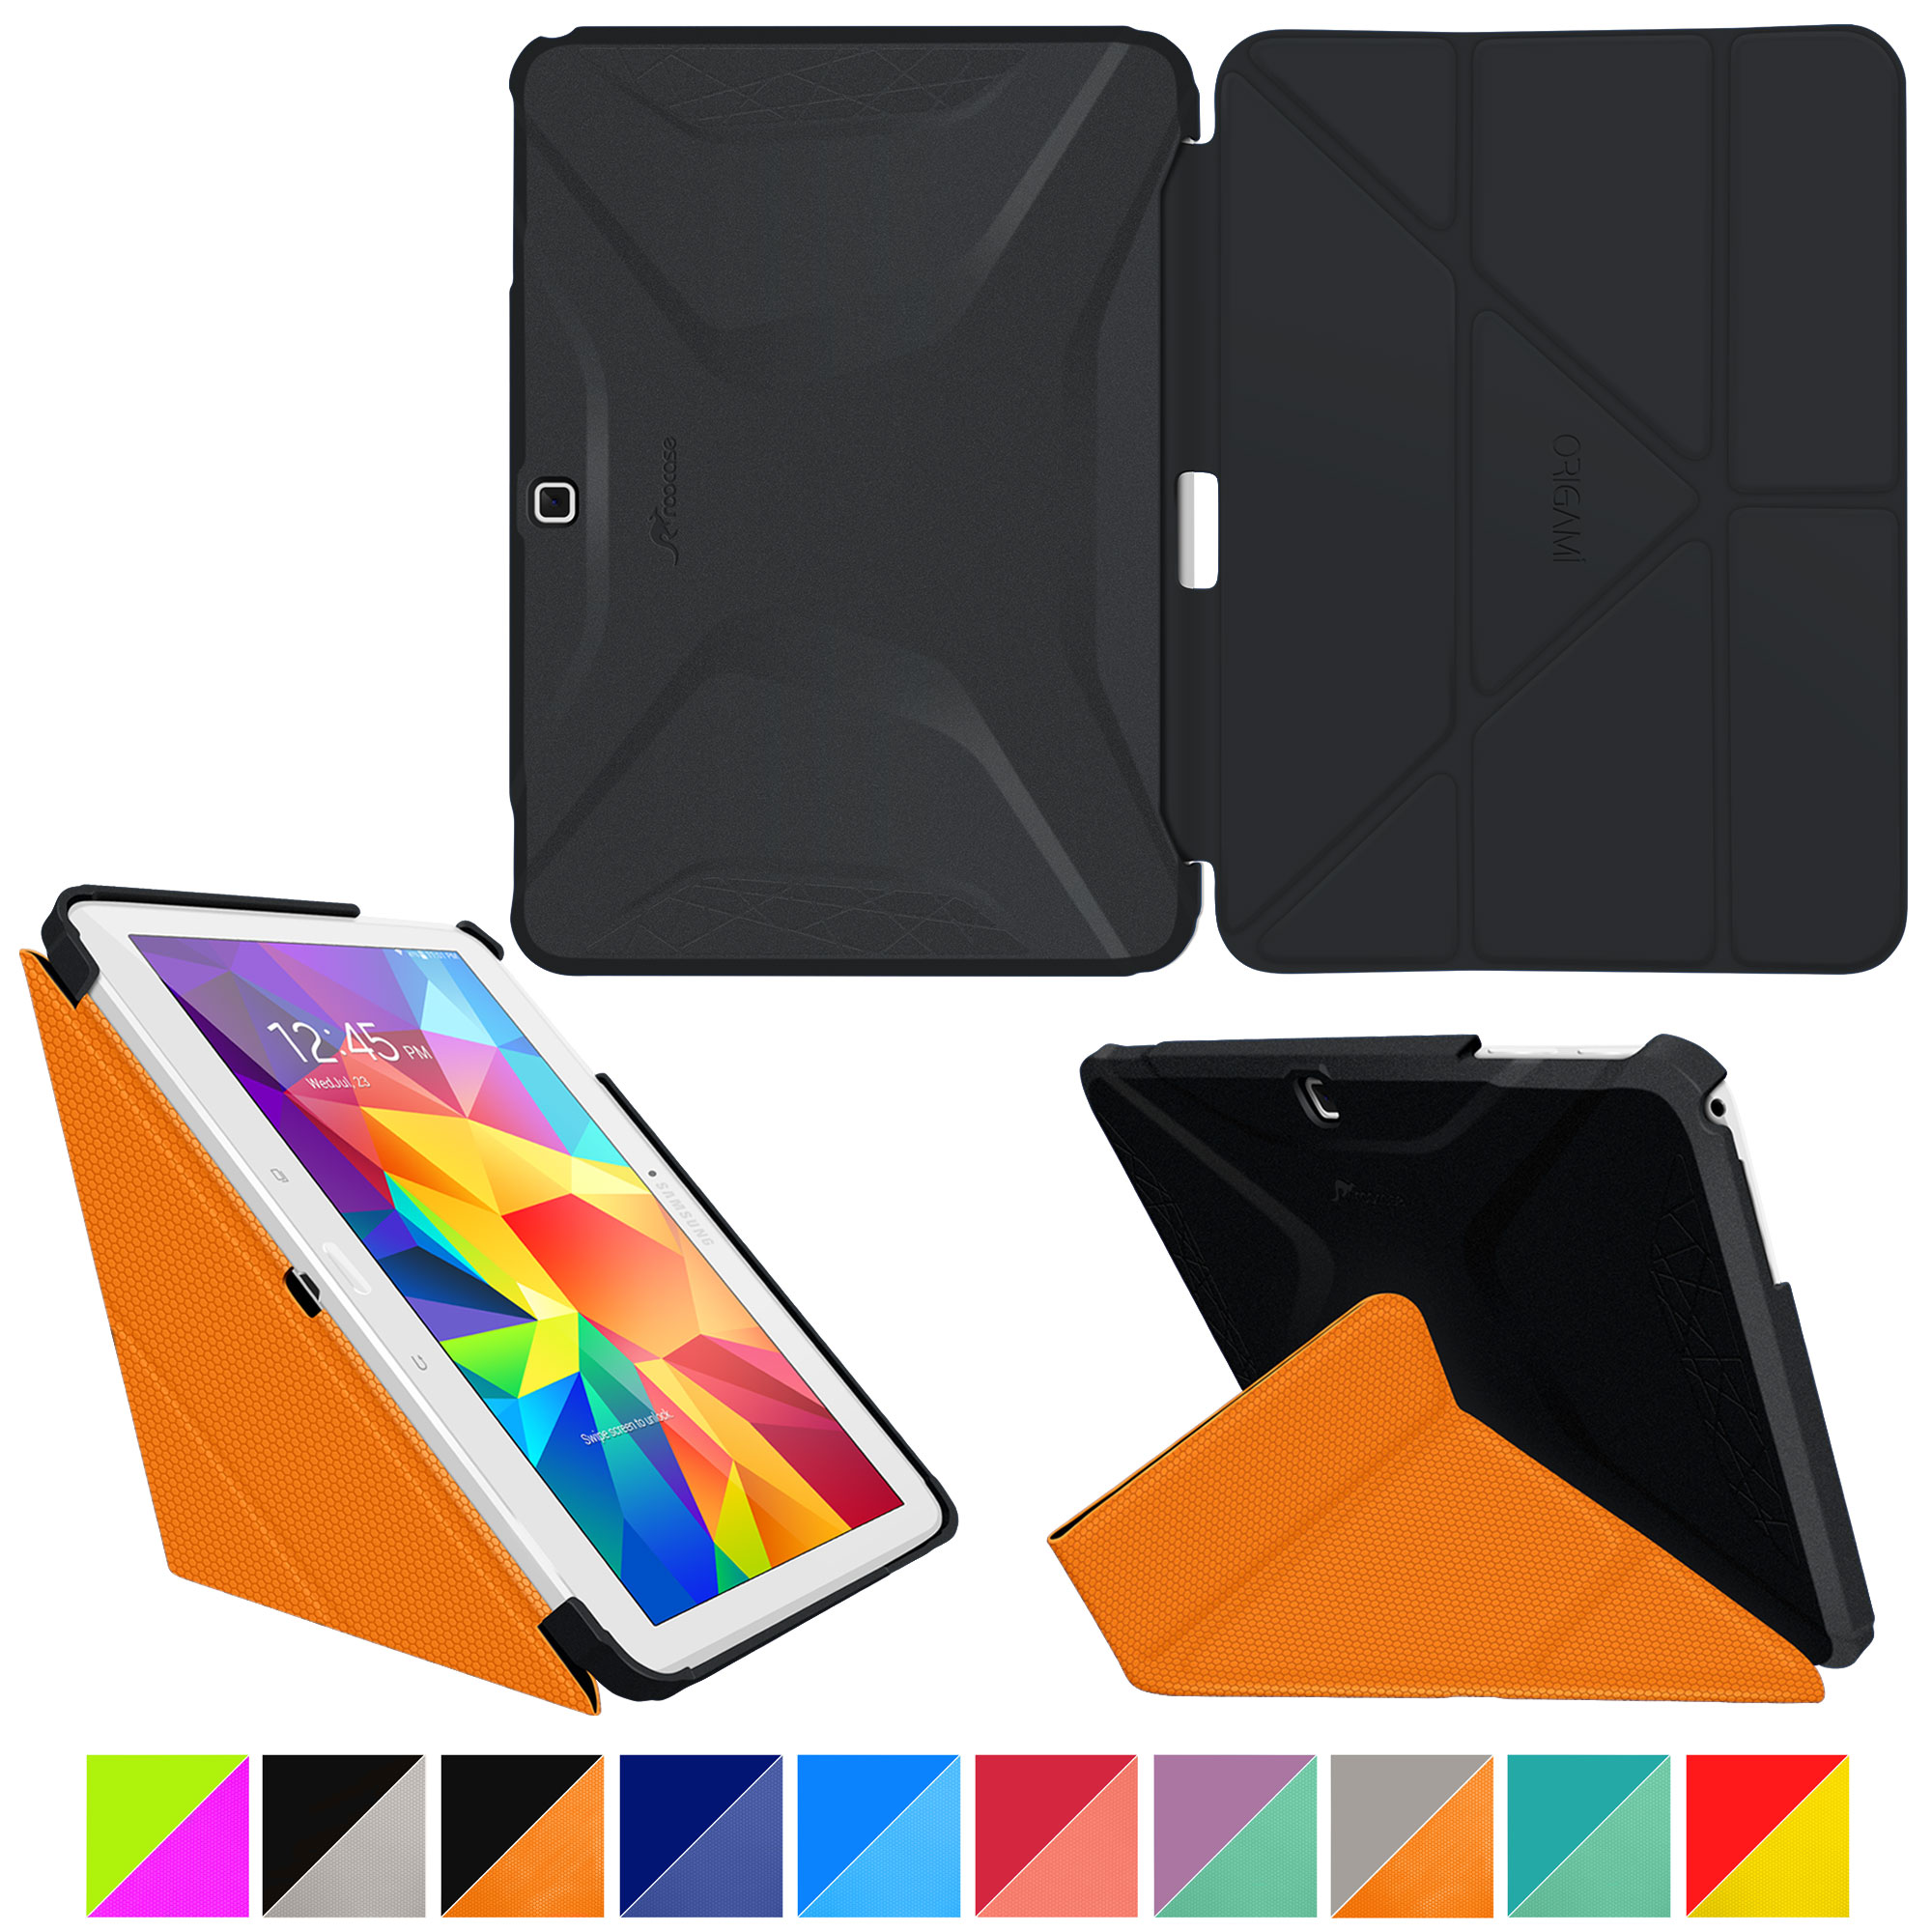 Galaxy Tab 4 10.1 Case, Samsung Galaxy Tab 4 10.1 Case, Origami Slim Fit Shell Lightweight Folio Leather PU Smart Cover Wake Sleep Stand Black/Orange